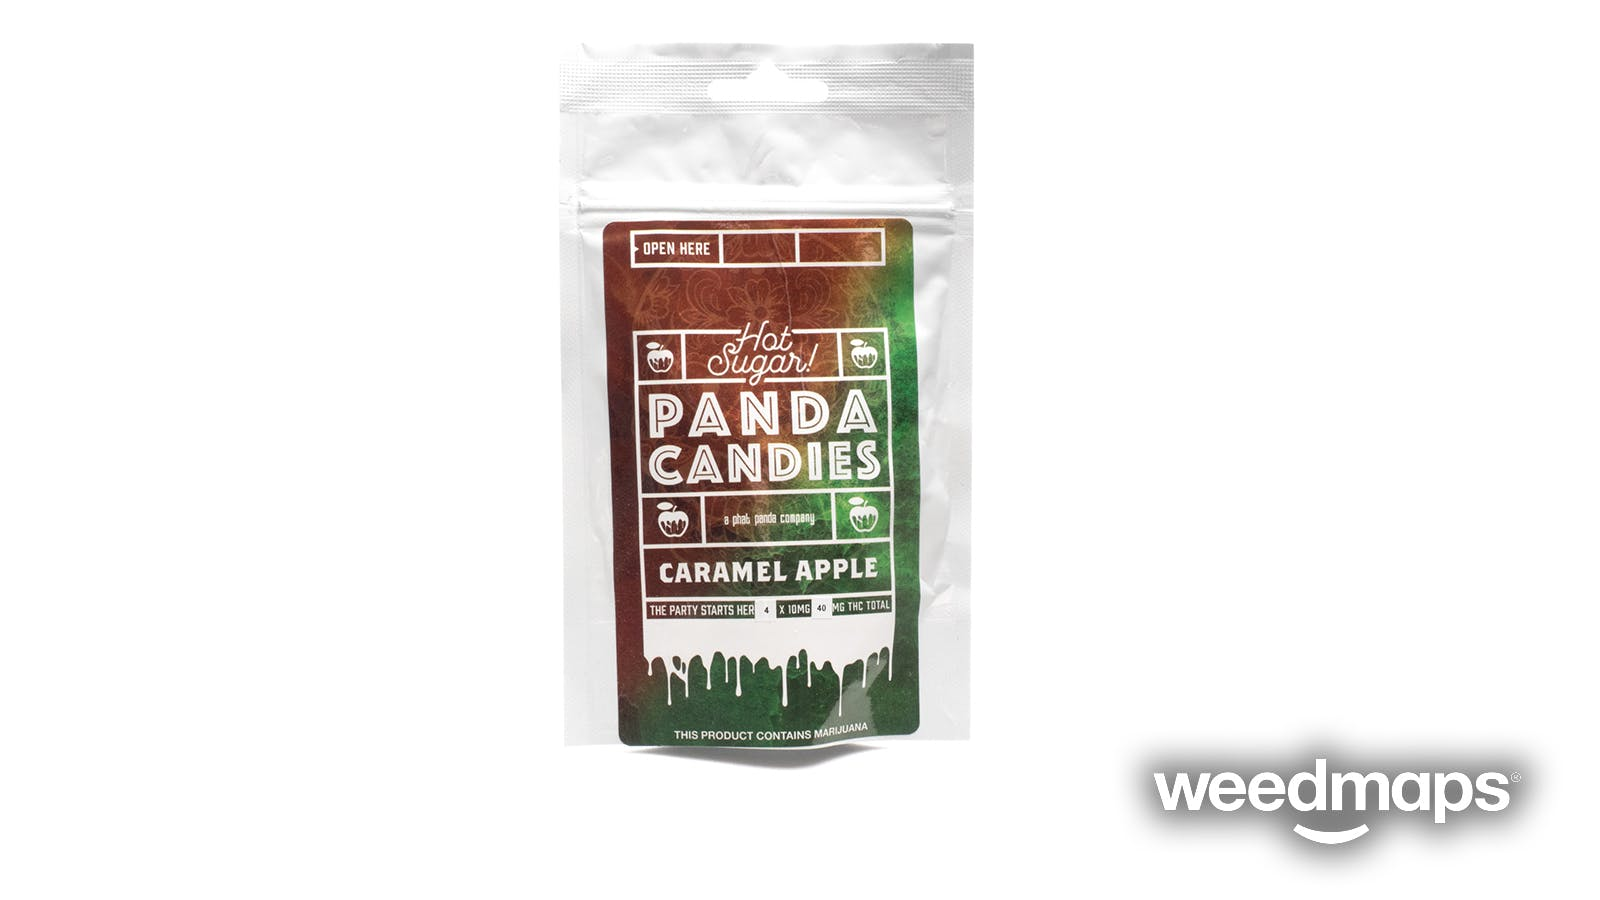 edible-hot-sugar-21-caramel-apple-panda-candies-10mg